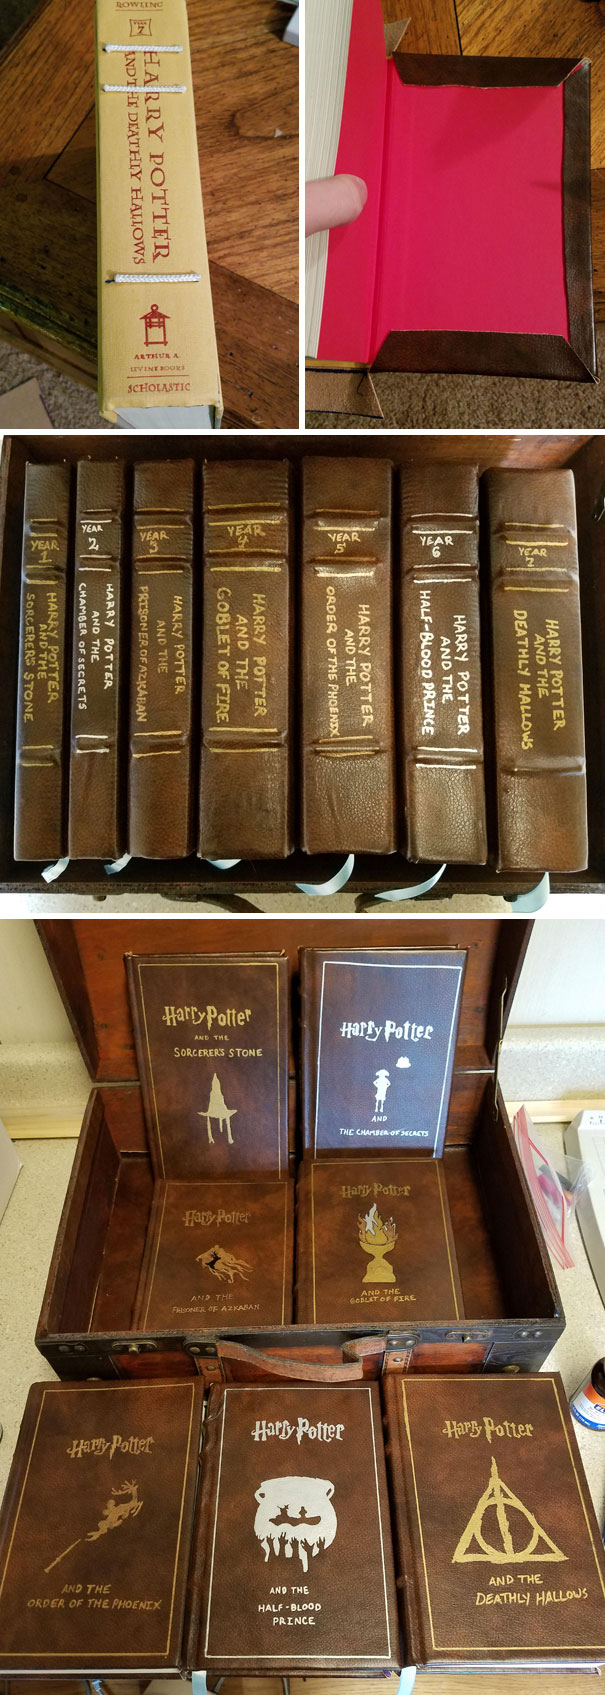 Made Leather Bound Copies Of The Harry Potter Books For My Wife For Christmas